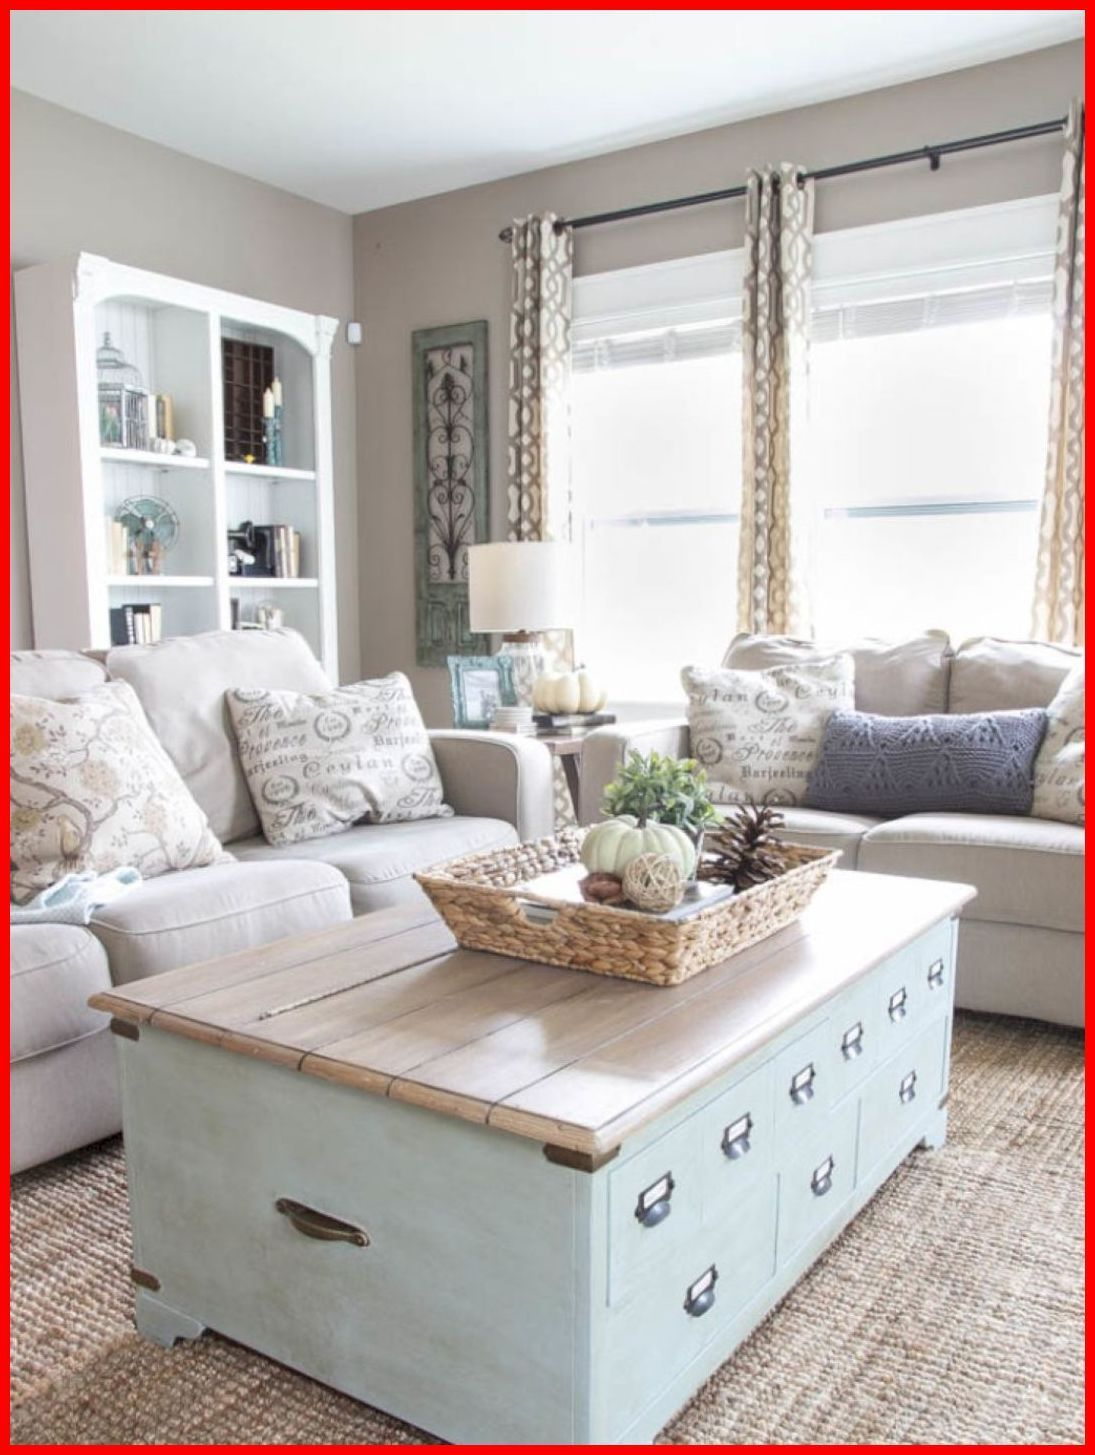 diy room decor how to make your bedroom a cozy haven with new rh pinterest com